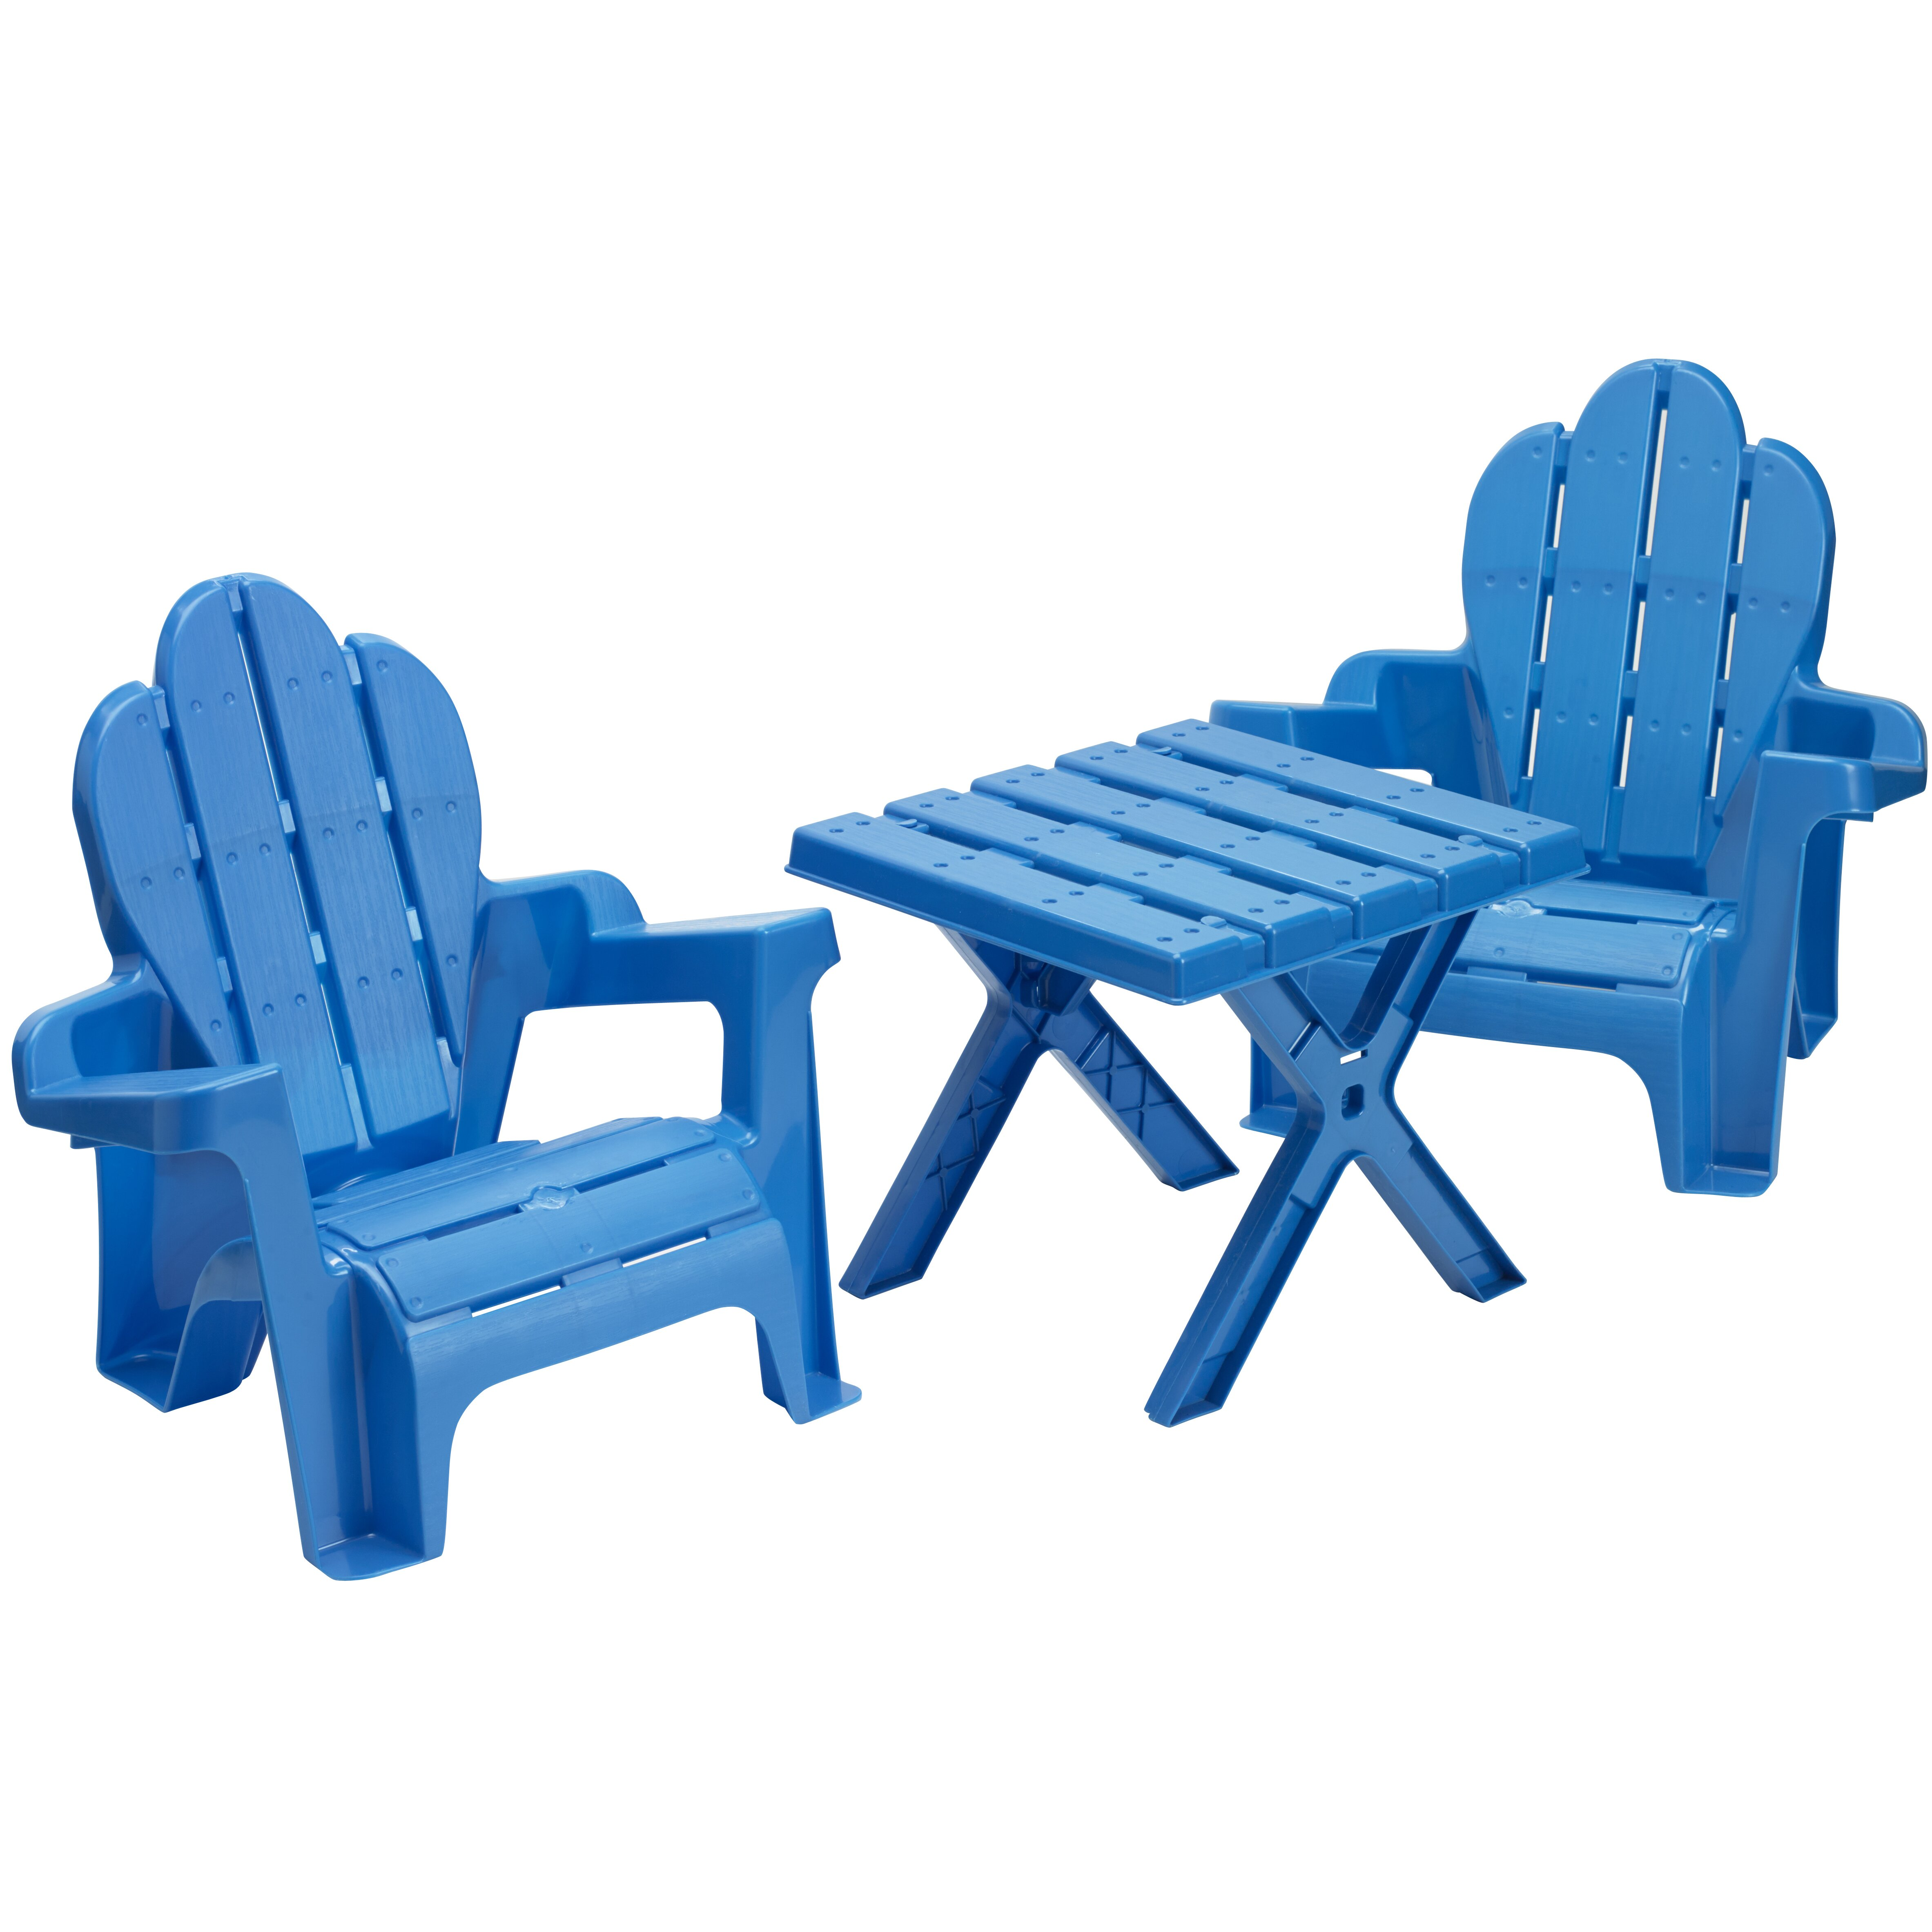 American Plastic Toys 3 Piece Adirondack Table And Chair